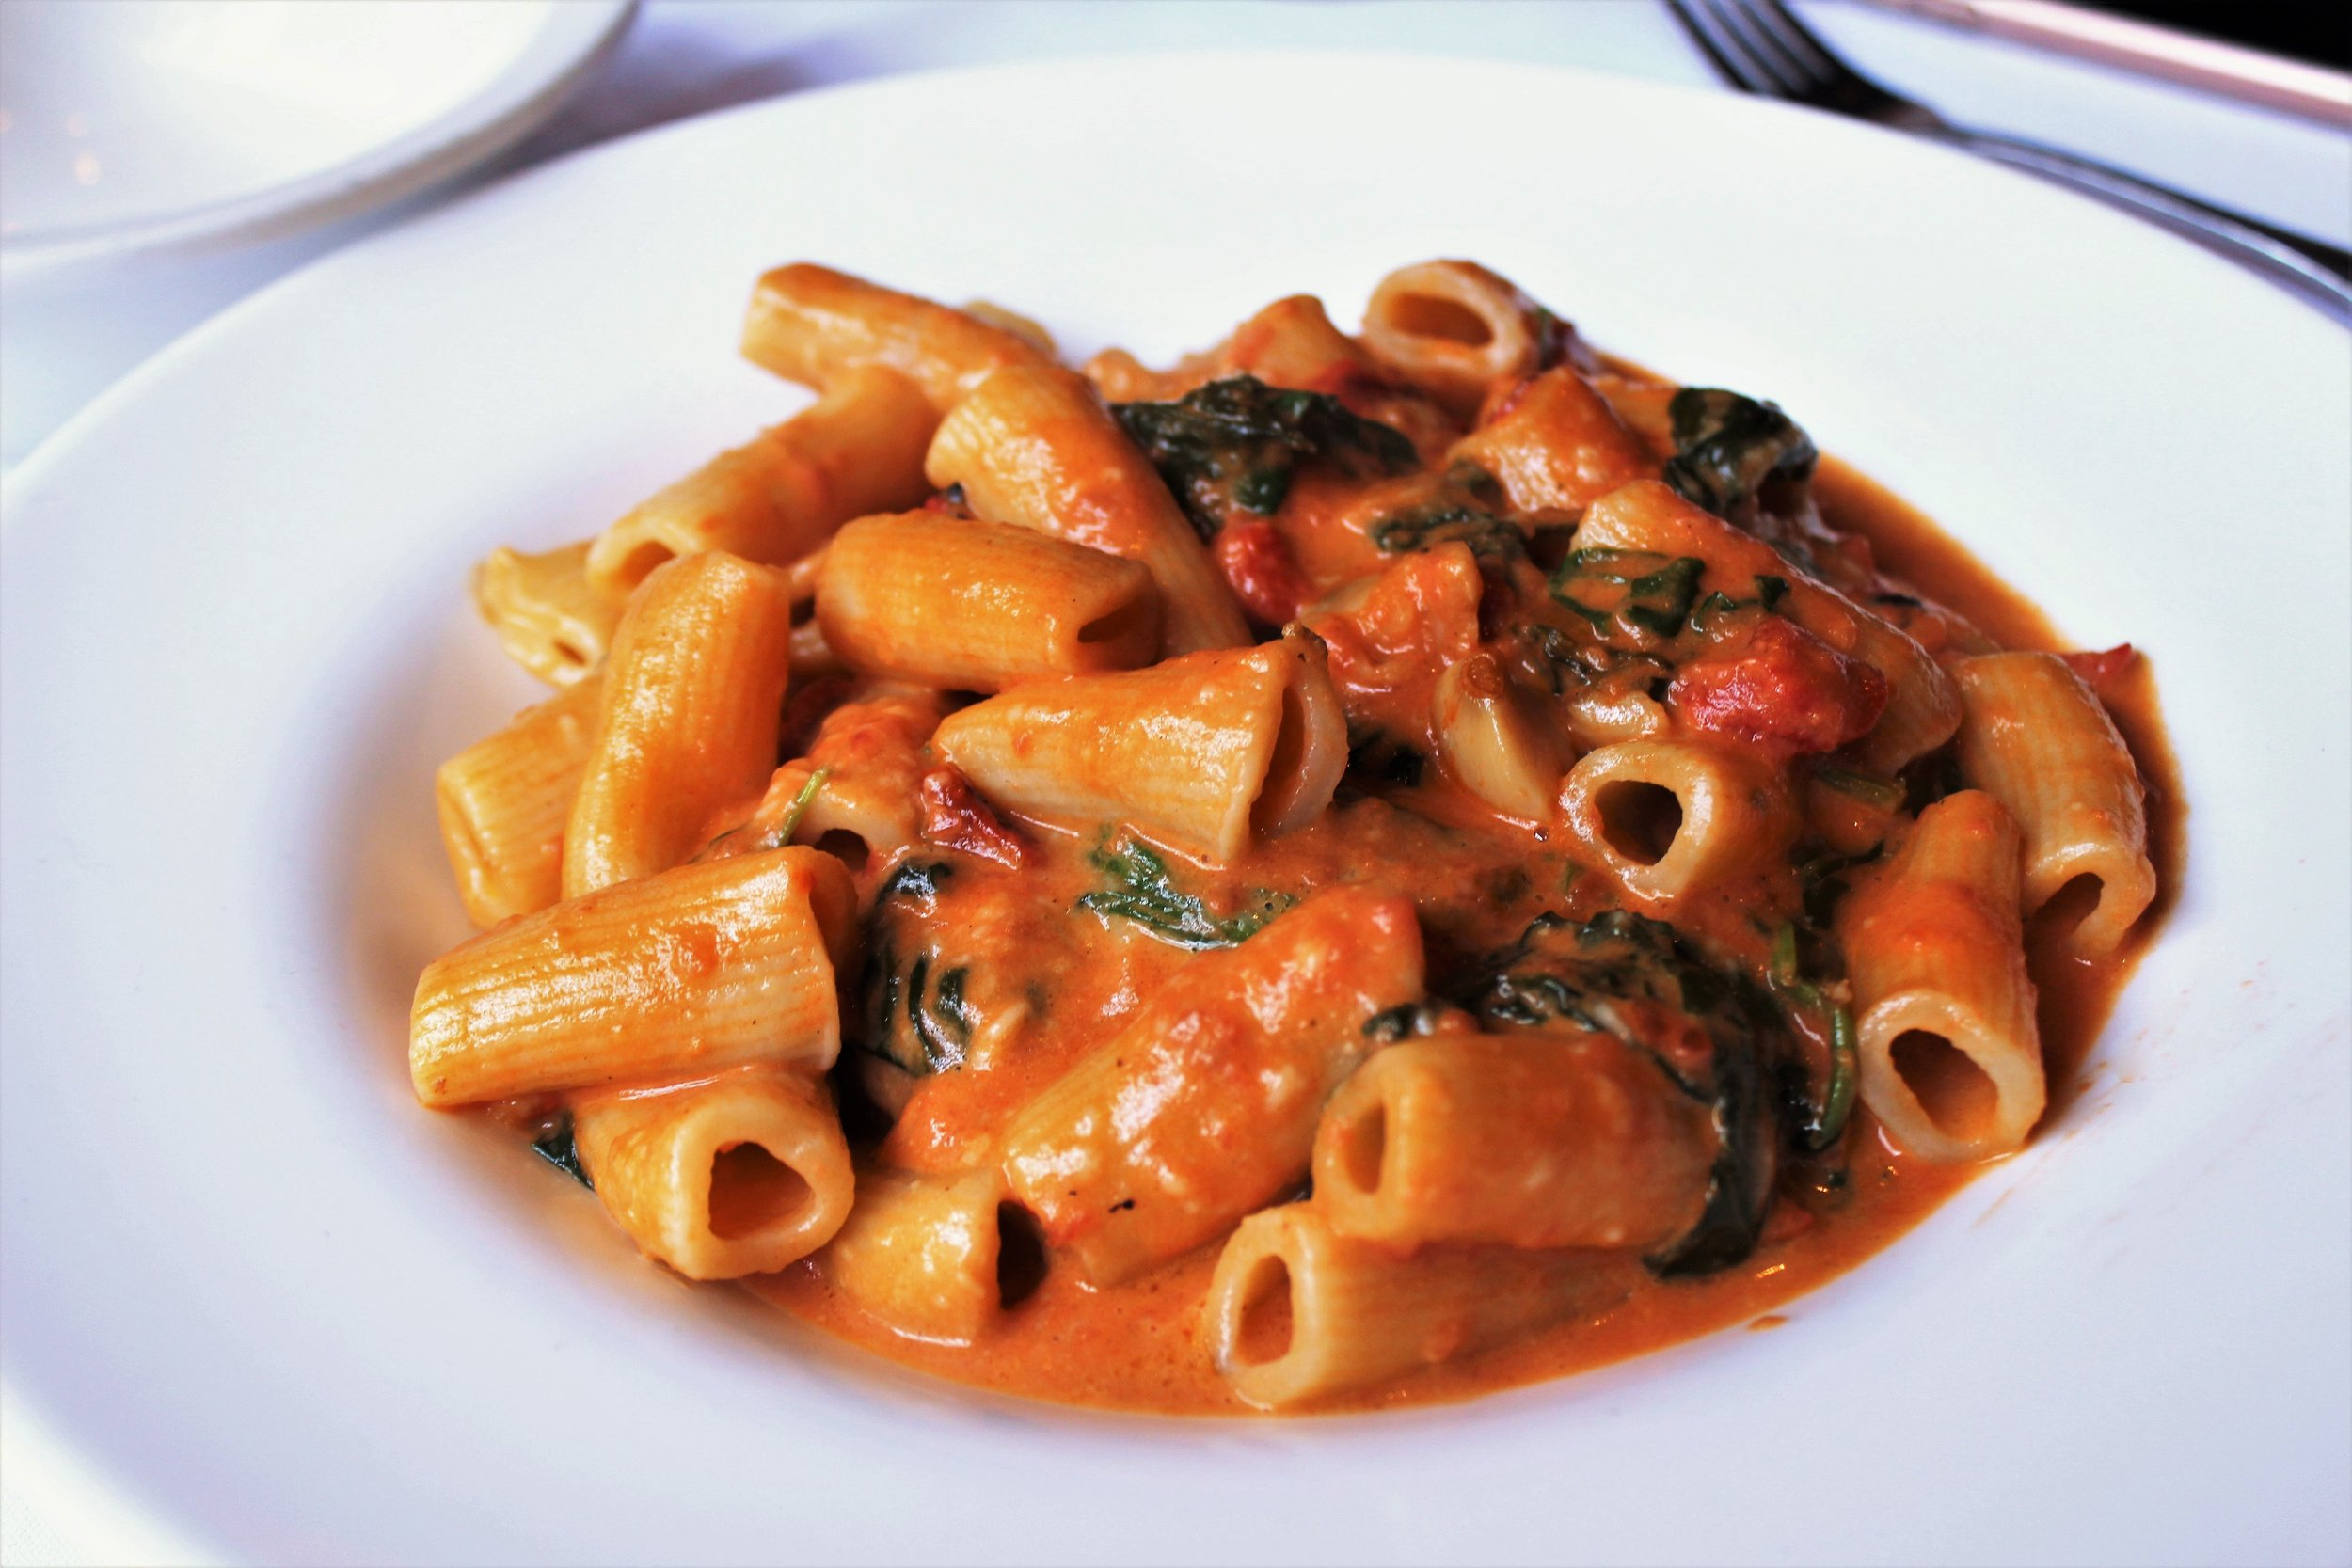 Penne Capricciose at Carmelina's in Boston